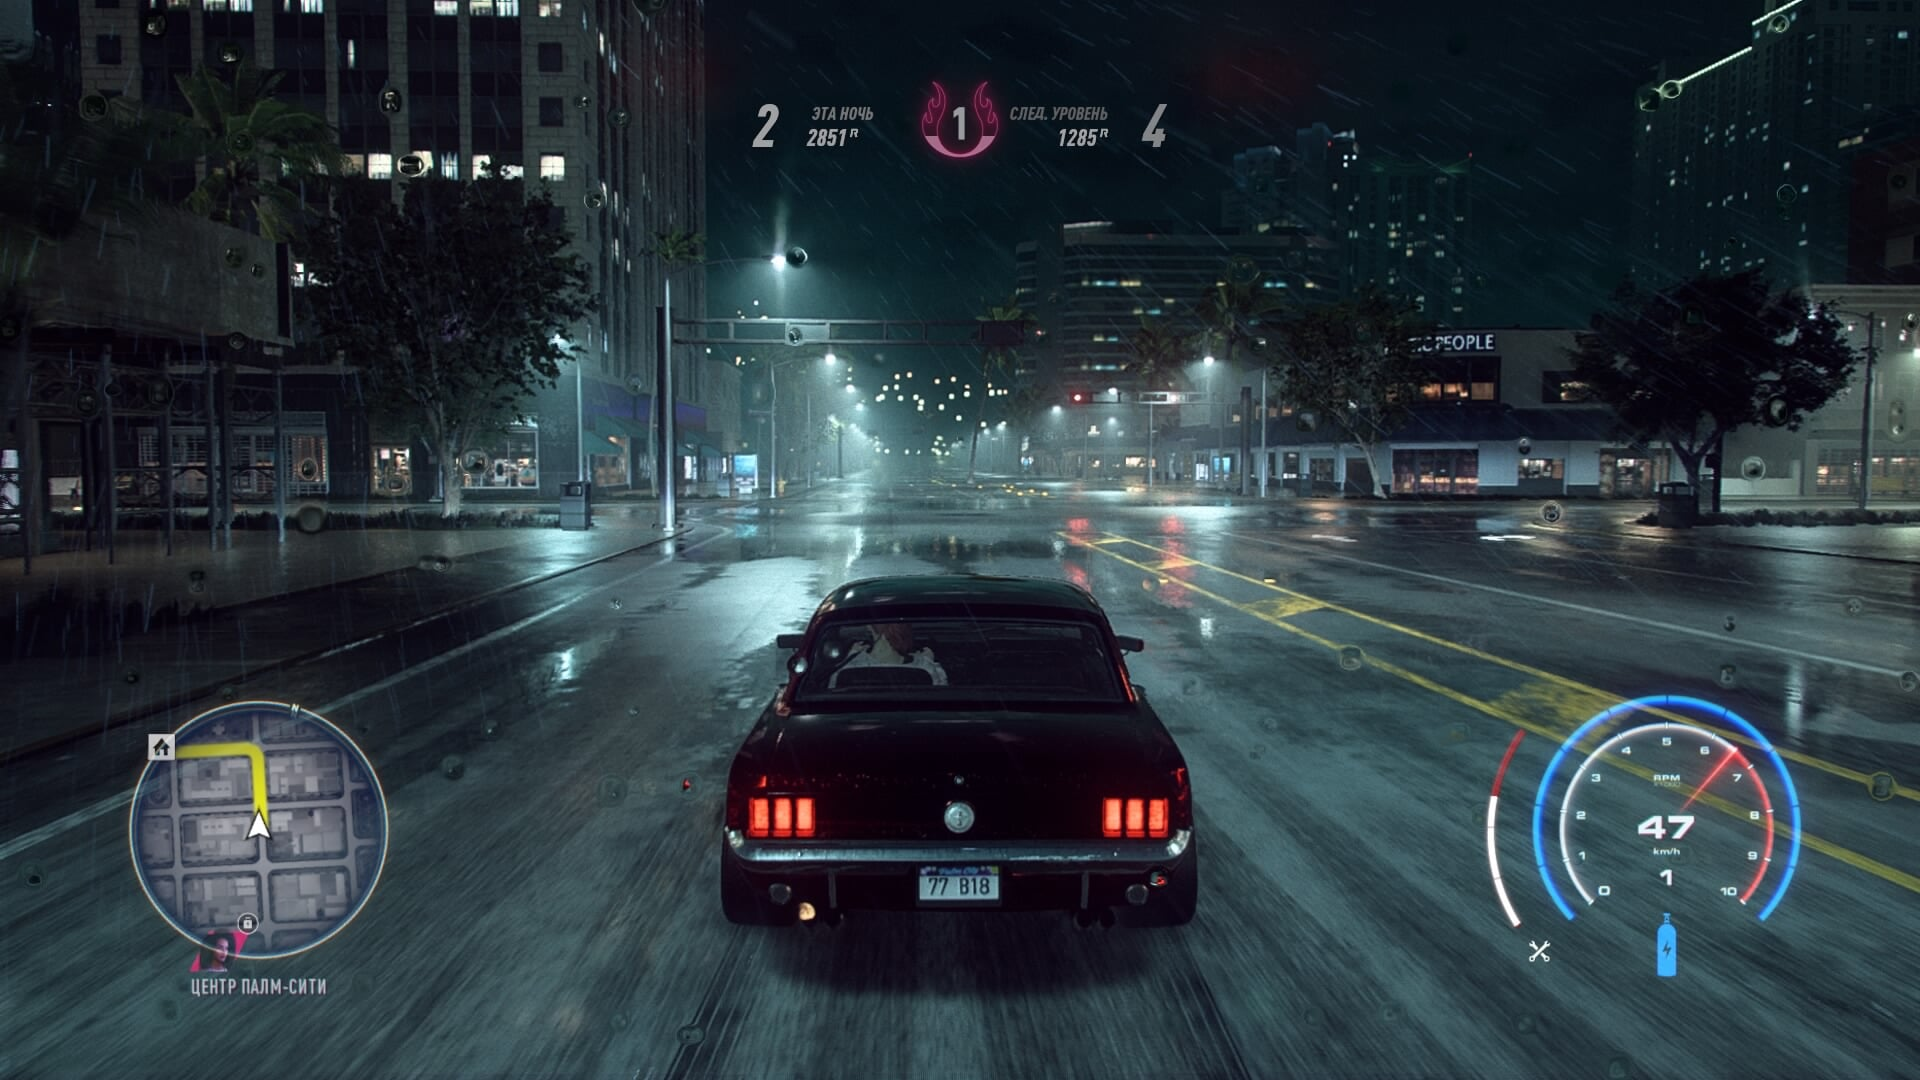 Гонки, PlayStation 4, Electronic Arts, Рецензии, Xbox One, Need for Speed Heat, PC